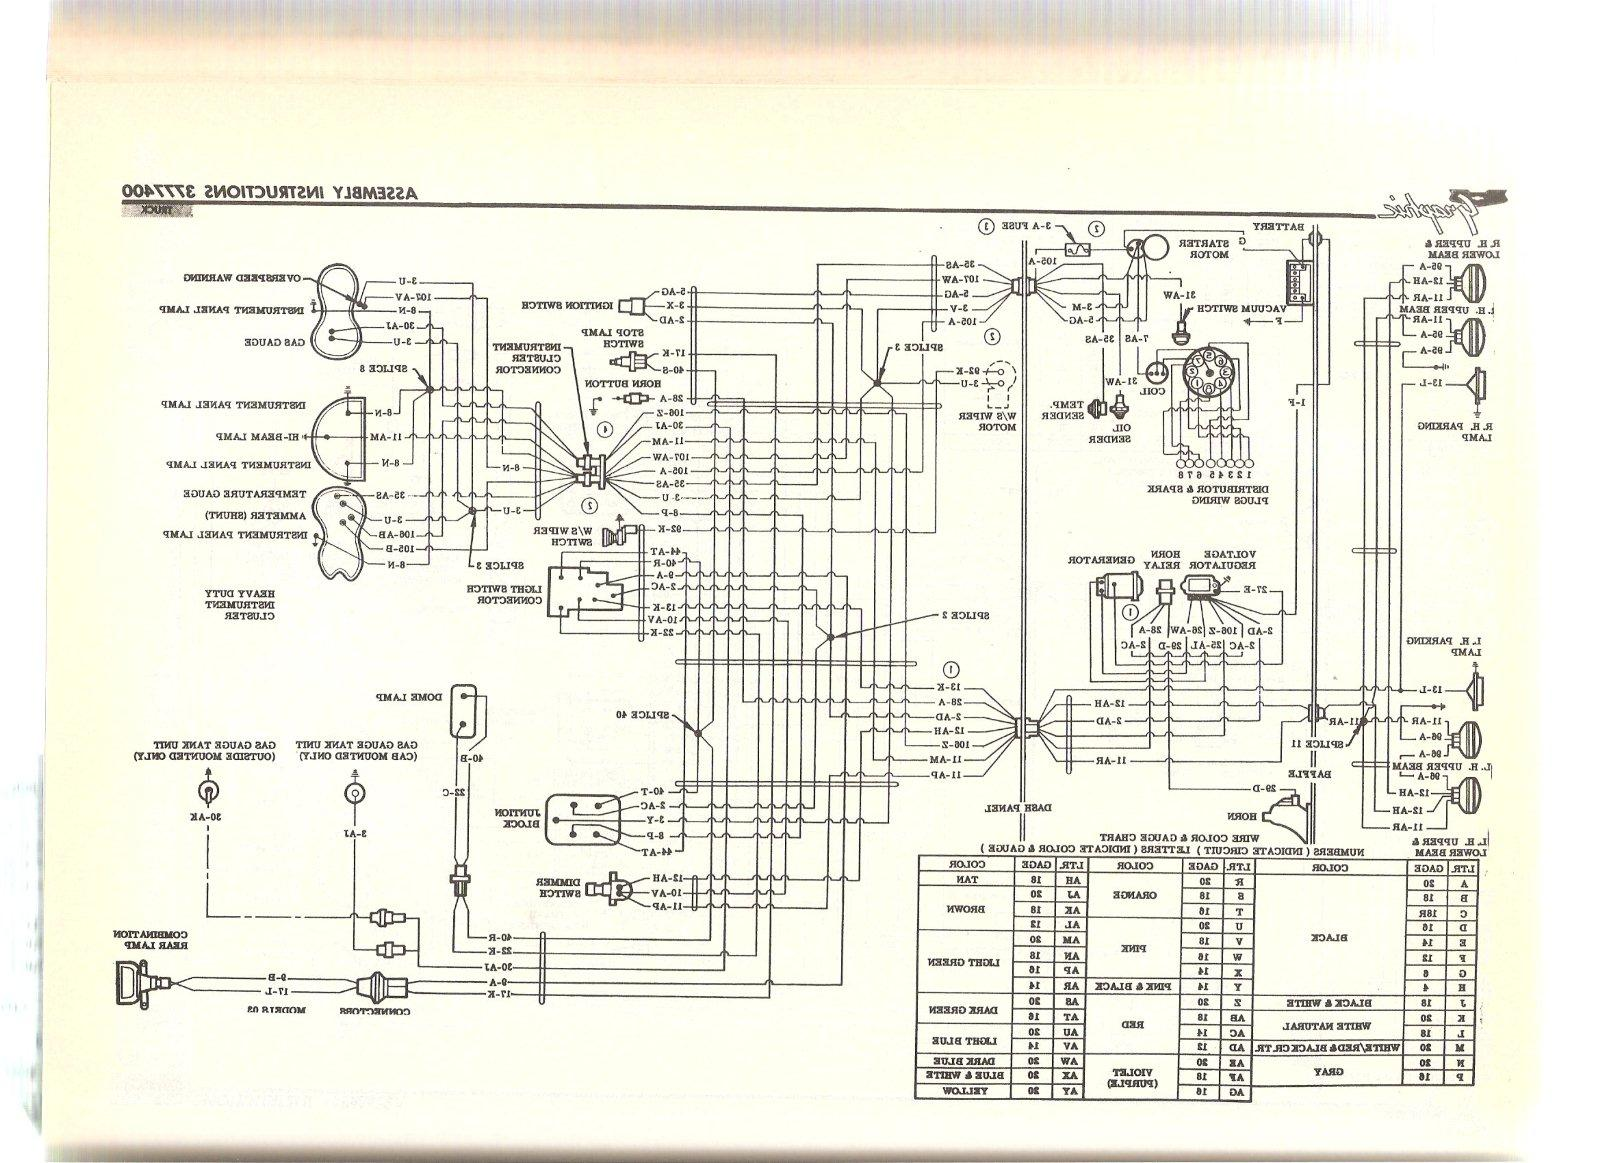 holden monaro gto wiring diagram schematic diagram rh 91 wihado de